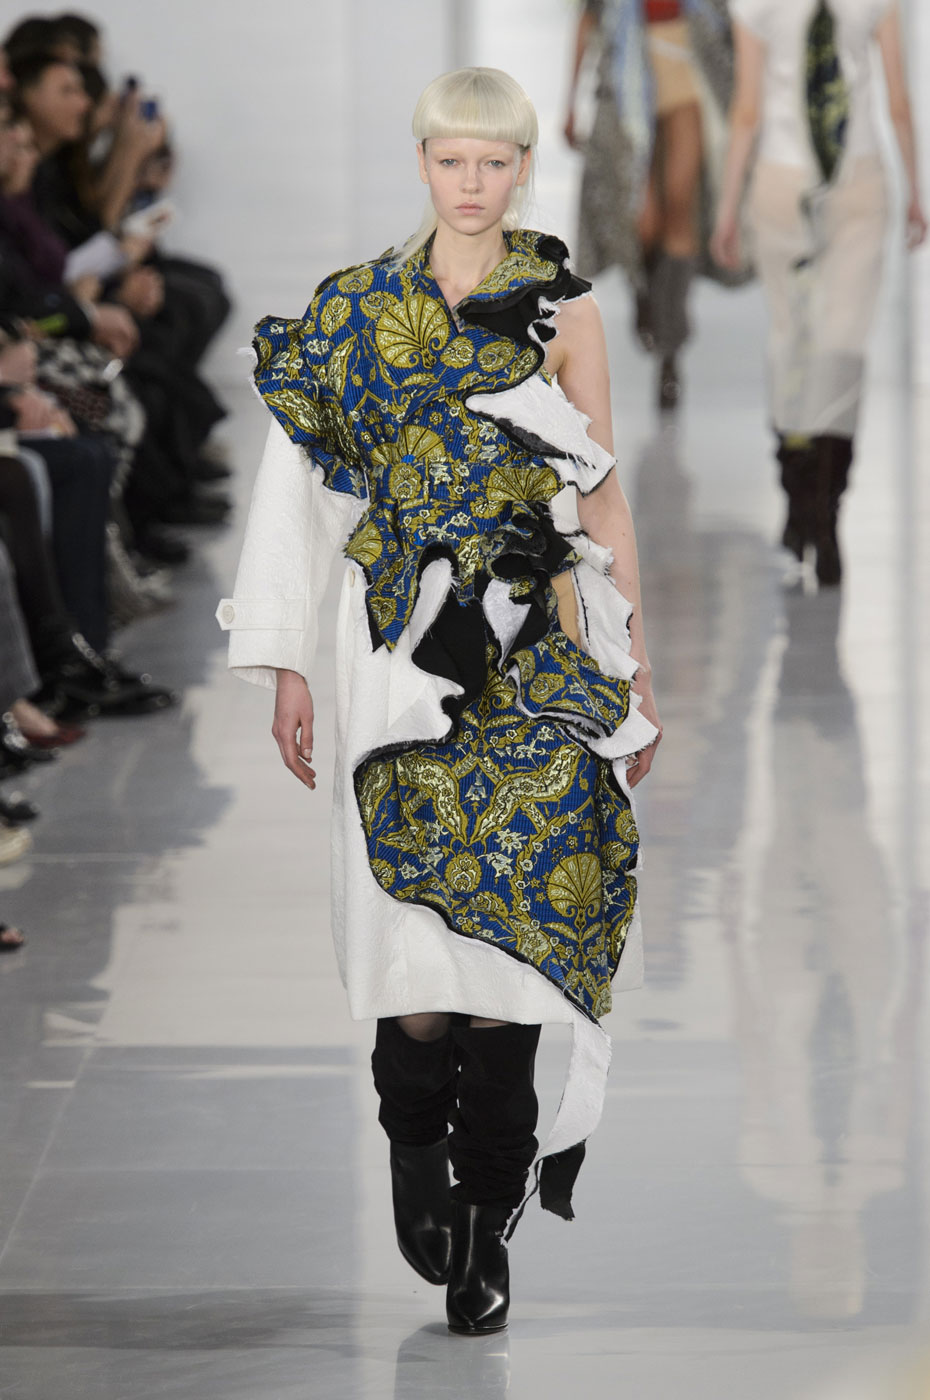 Maison Margiela Embraces Absurdism for Spring 2016 Couture